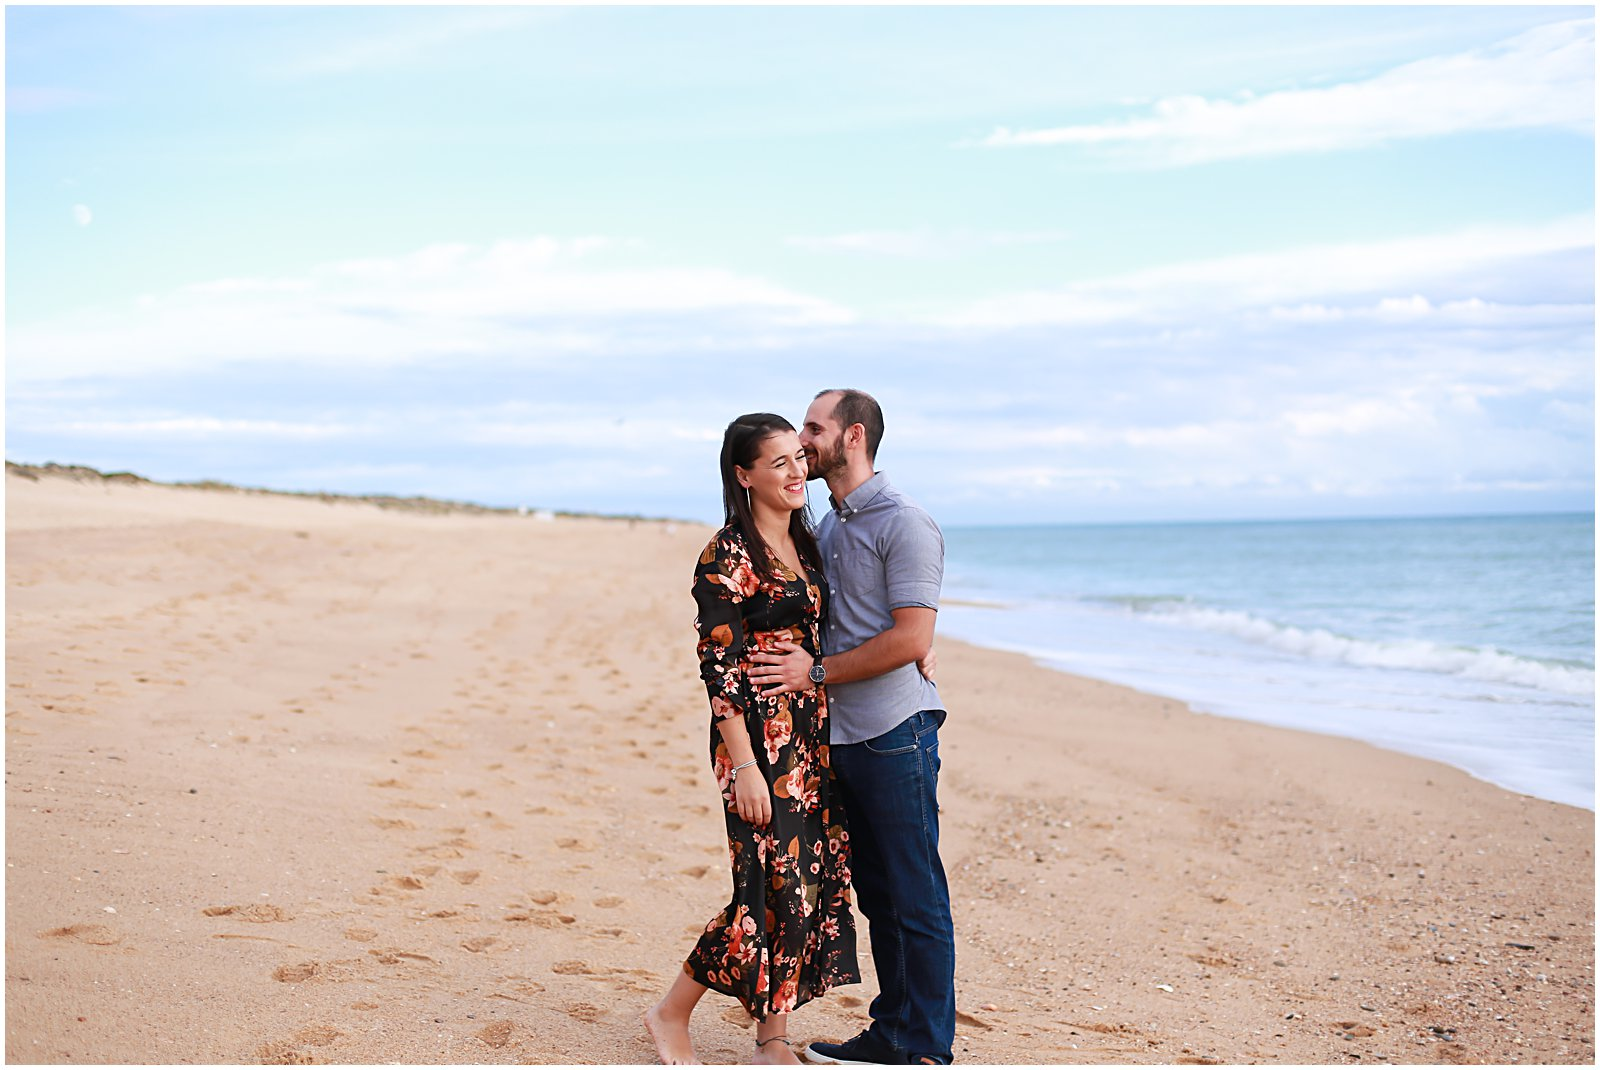 engaged couple photographed on the beach in algarve portugal